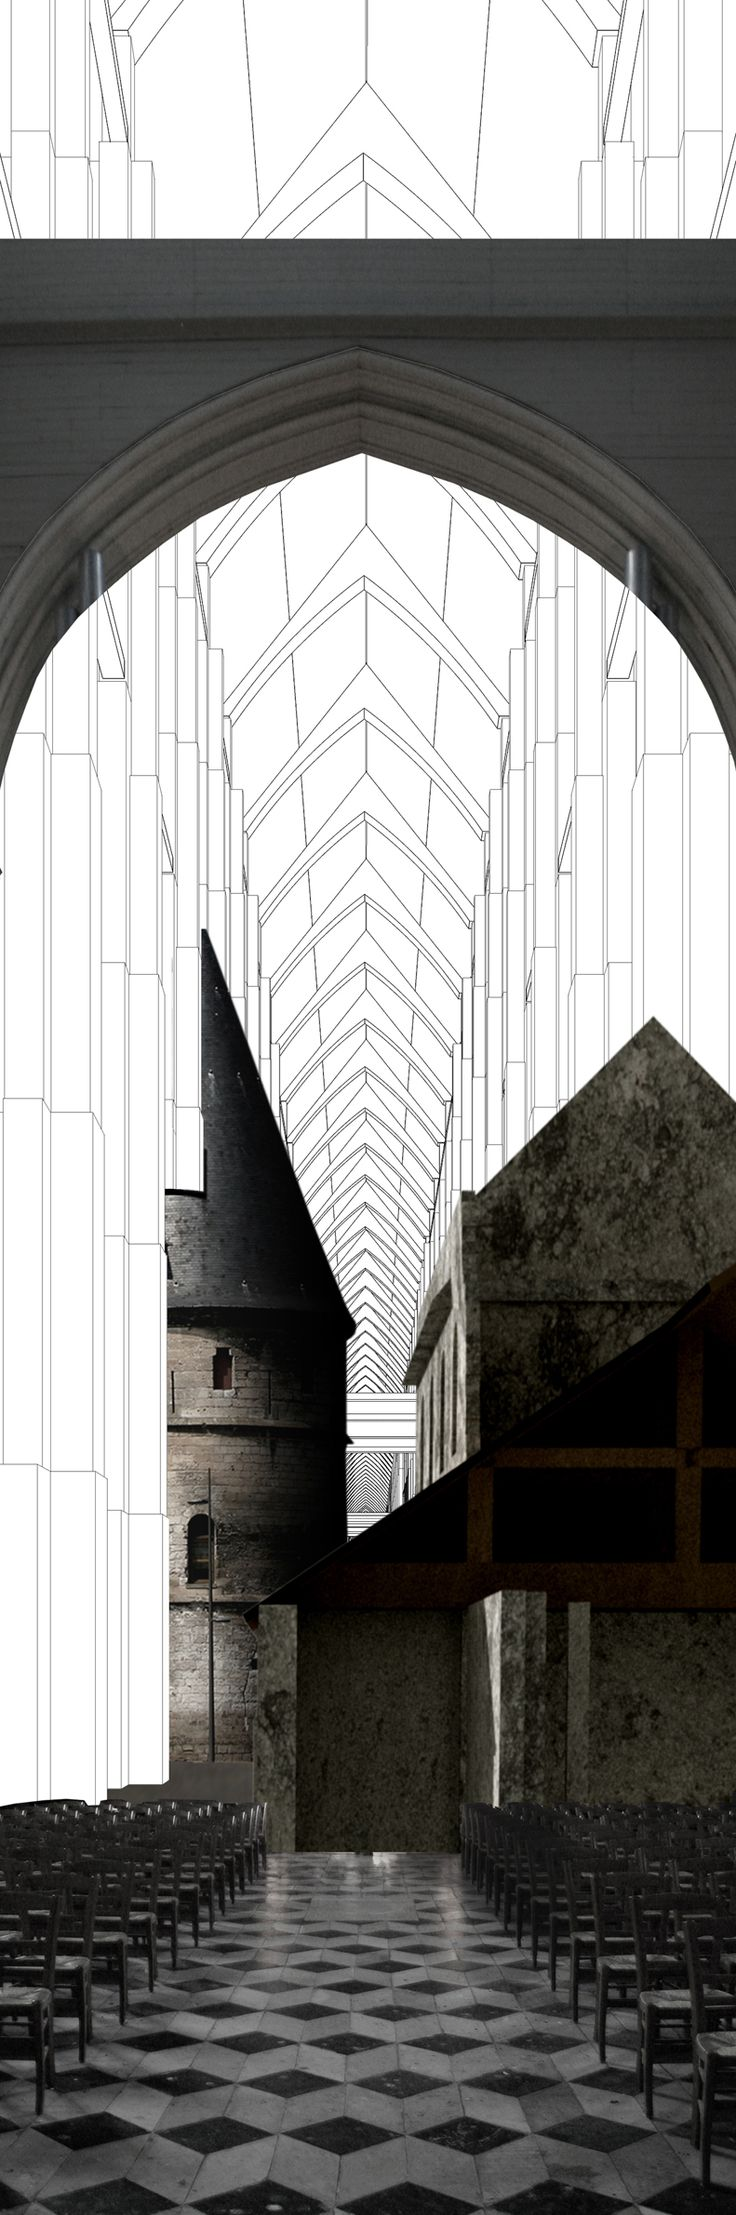 Presentation AA School of Architecture Projects Review 2011 - Diploma 3 - Charles Lai